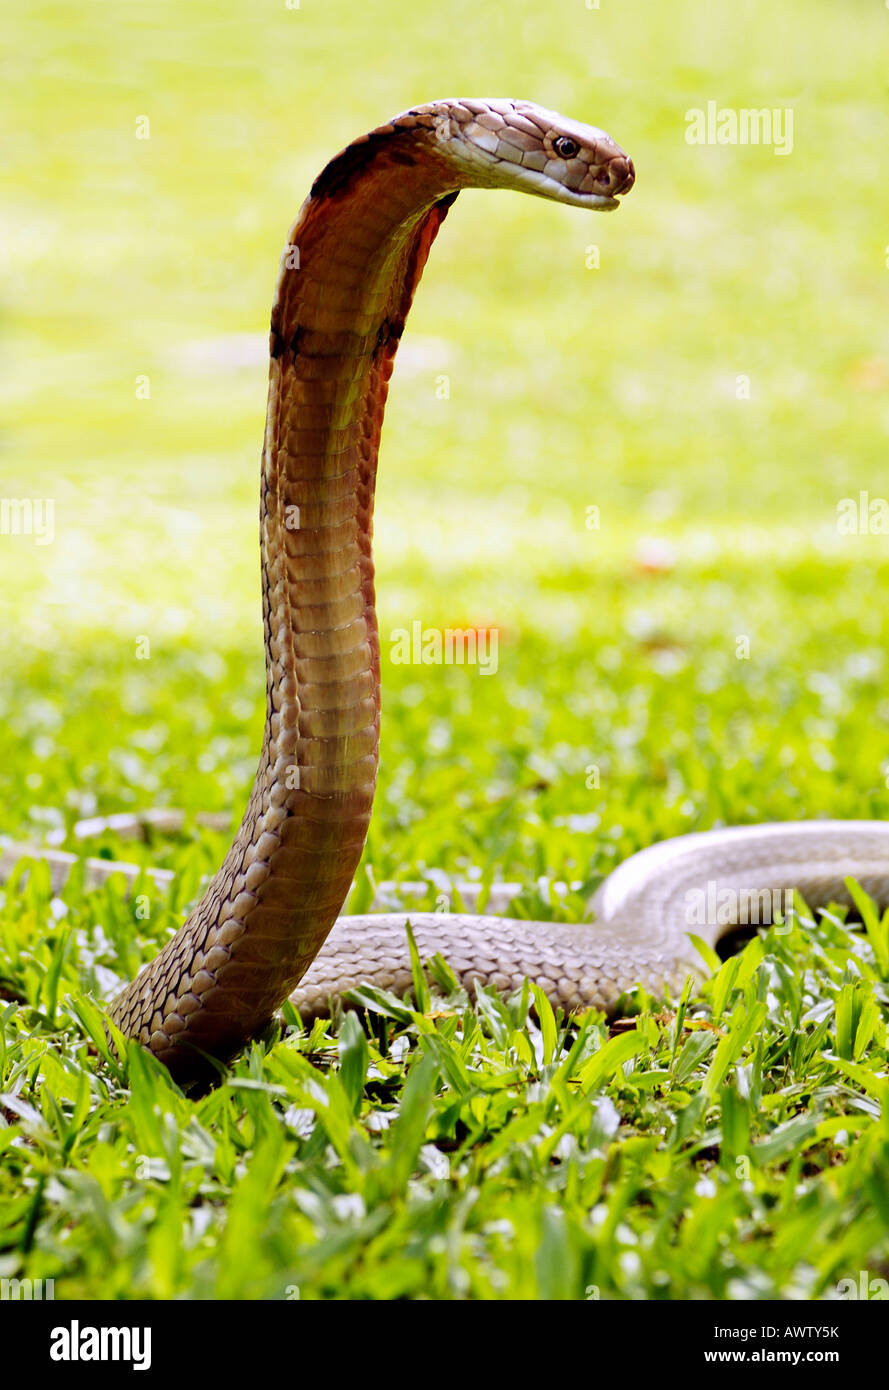 King Cobra Snake Green Grass Stock Photos & King Cobra Snake